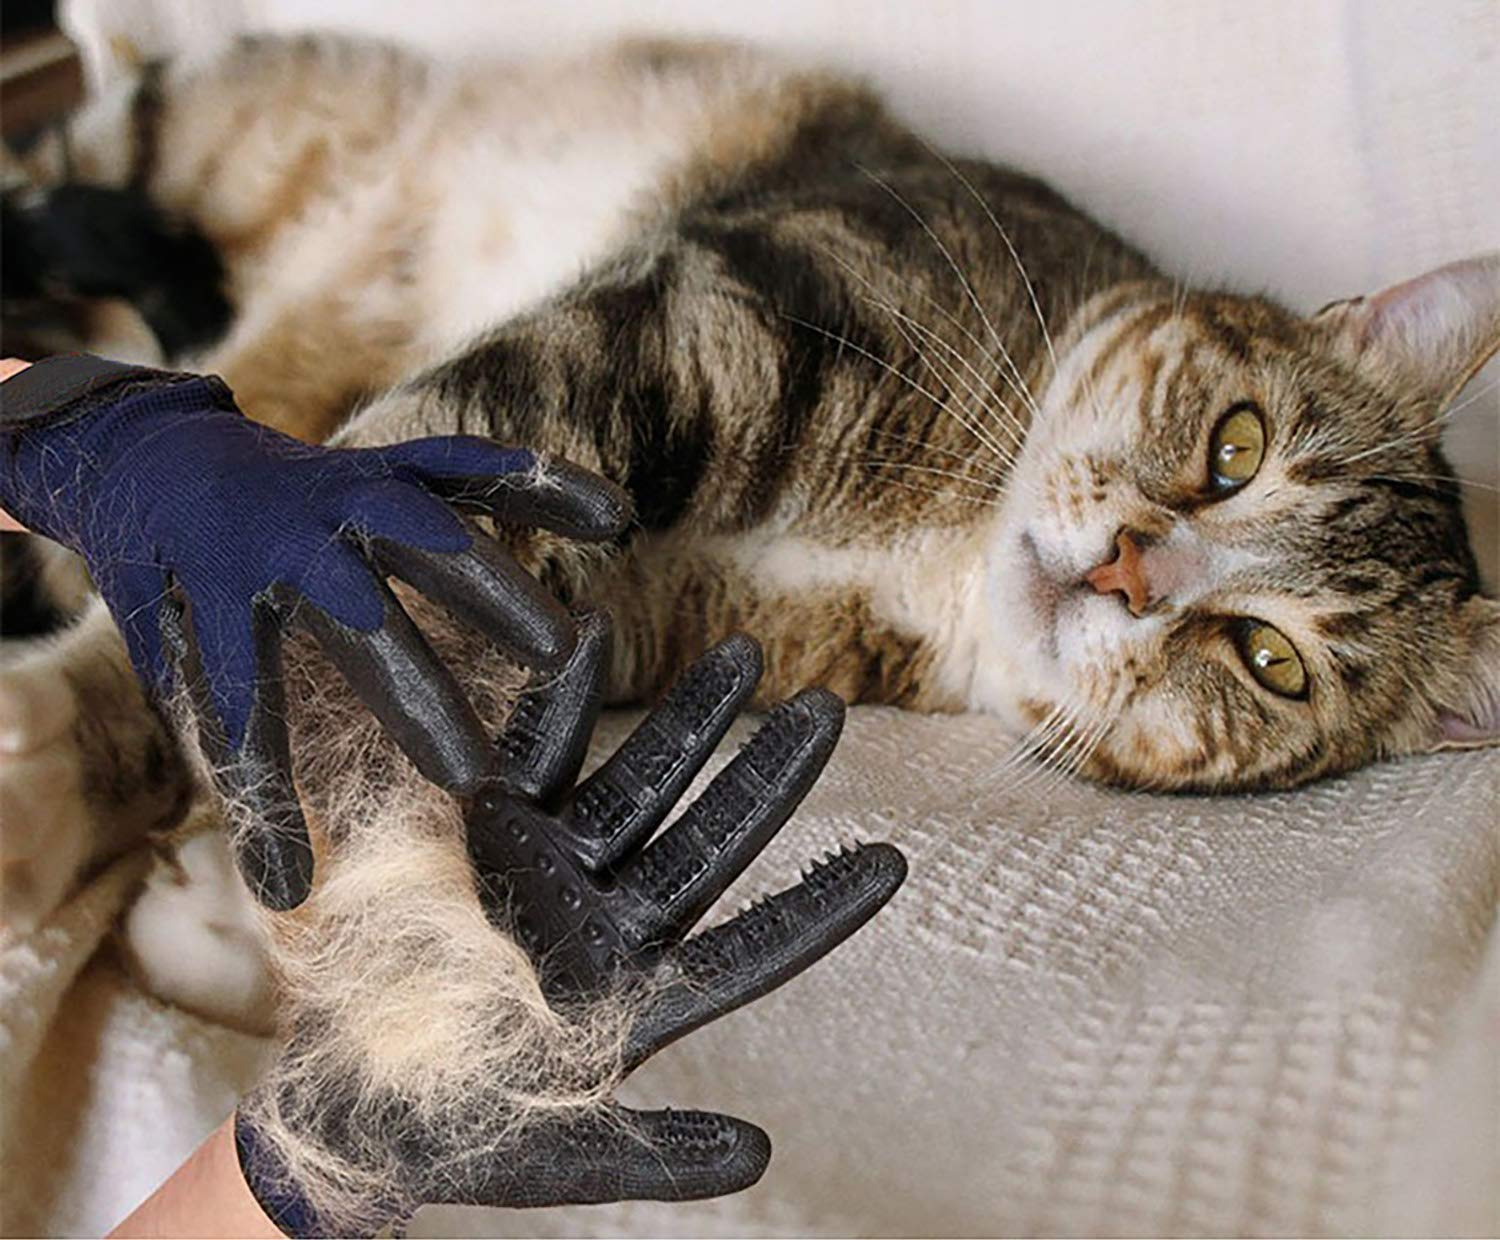 MMTX Pet Massage Gloves - 1 Pair Rubber Deshedding Brush Glove Pets Hair Remover Mitts Pet Bath Grooming Massage Tool for Cats and Dogs with Long & Short Fur by MMTX (Image #3)